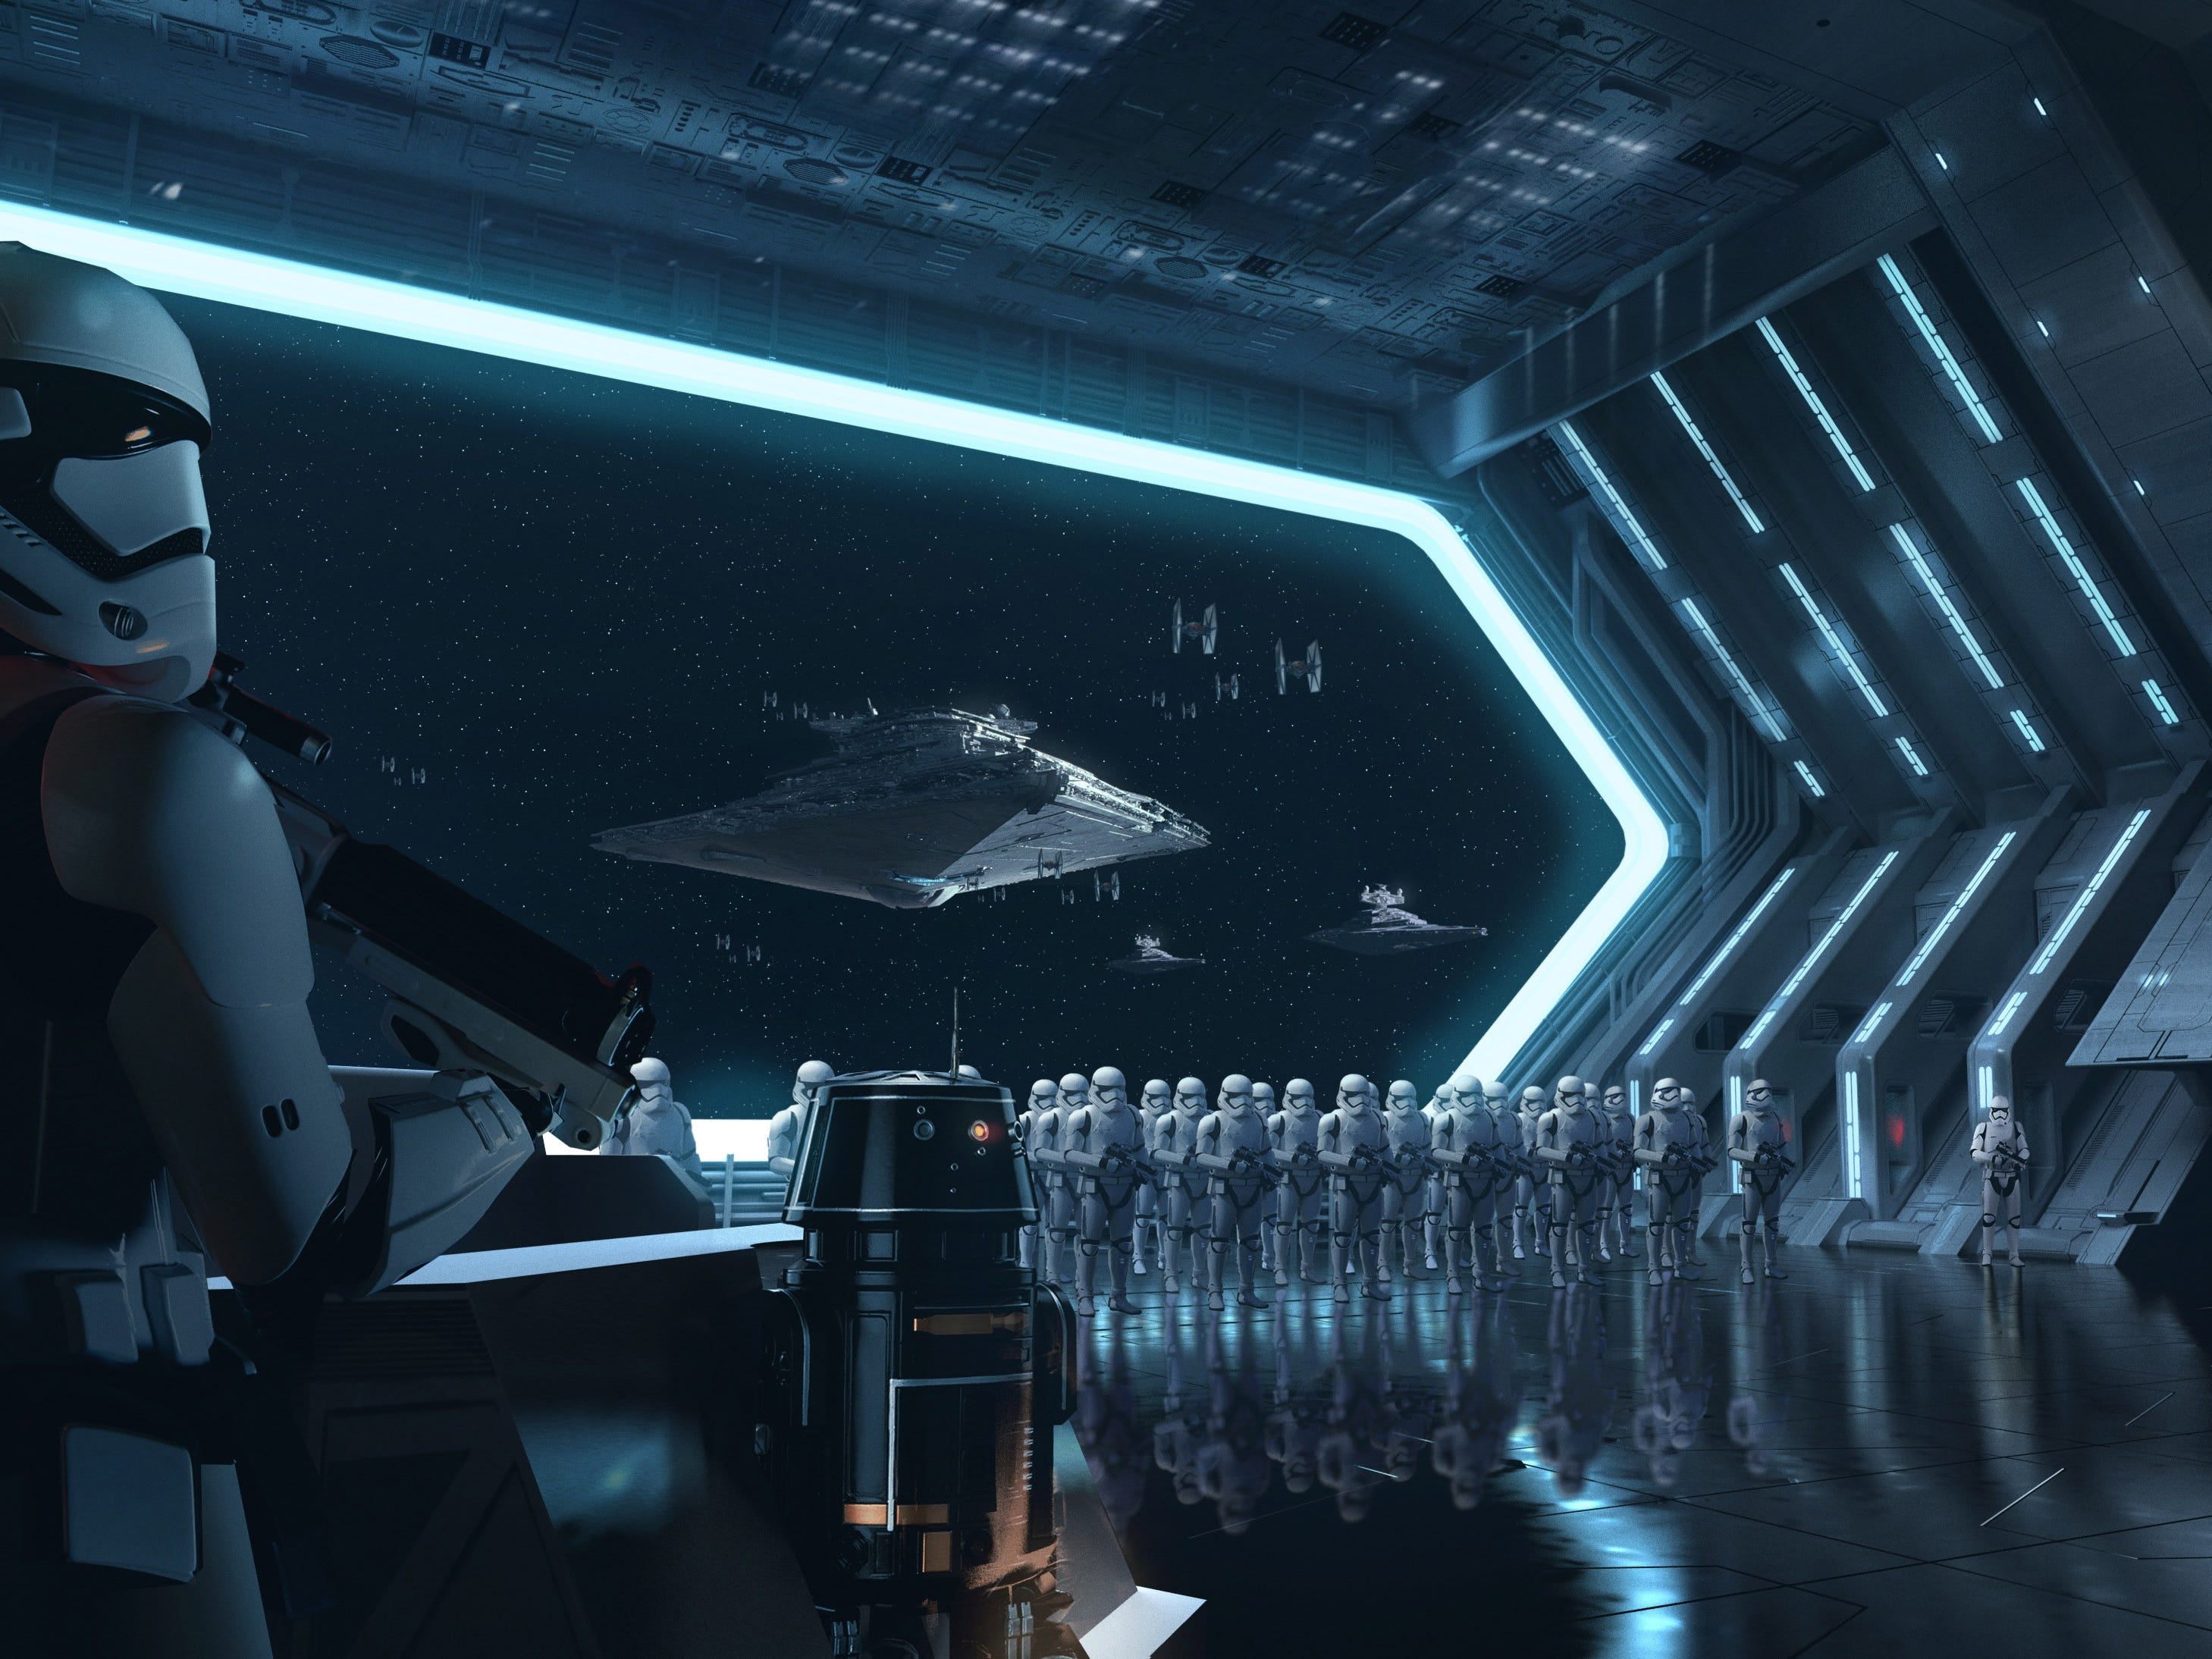 Disney guests will traverse the corridors of a Star Destroyer on Star Wars: Rise of the Resistance and join an epic battle between the First Order and the Resistance.